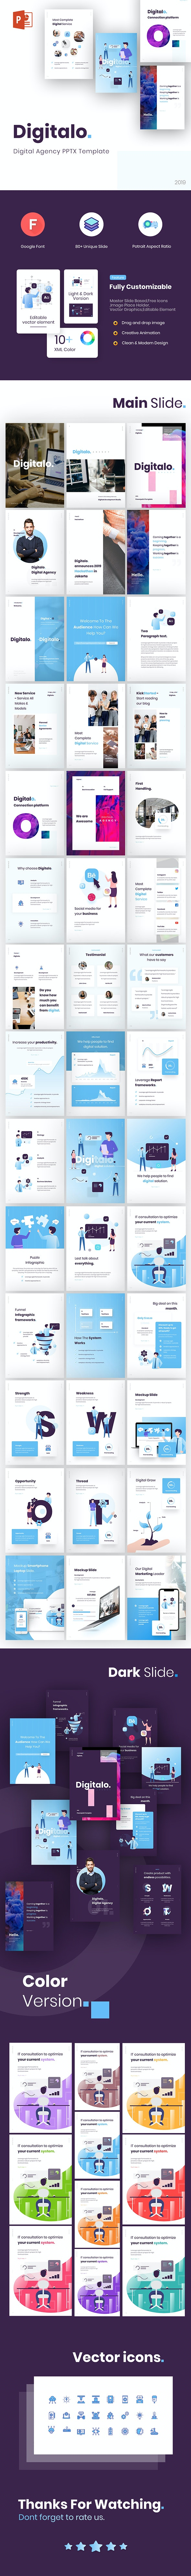 Digitalo Portrait Digital Agency PowerPoint Template - PowerPoint Templates Presentation Templates